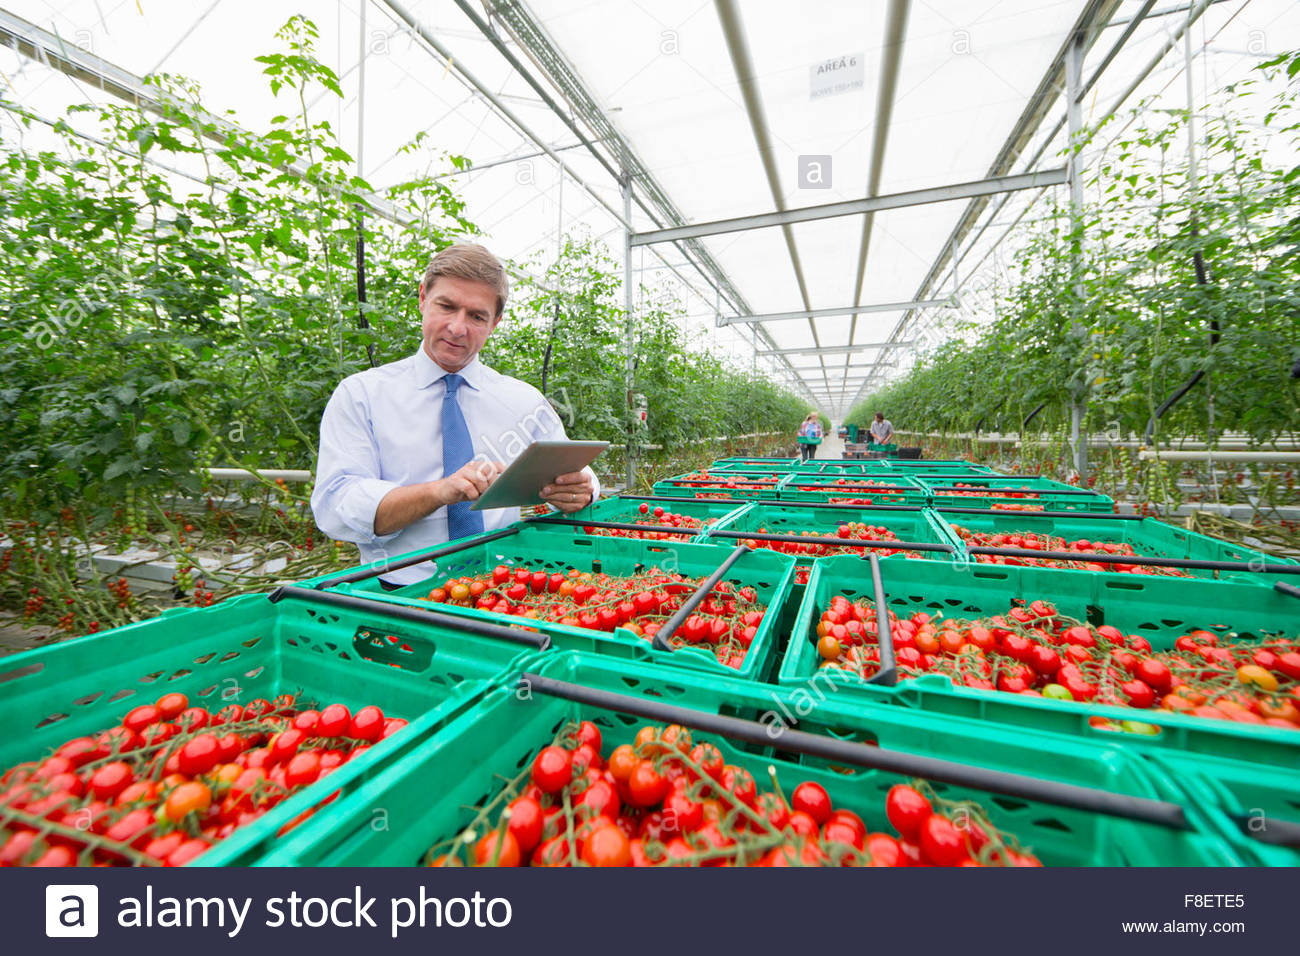 Businessman with digital tablet inspecting crates of ripe red vine tomatoes in greenhouse - Stock Image